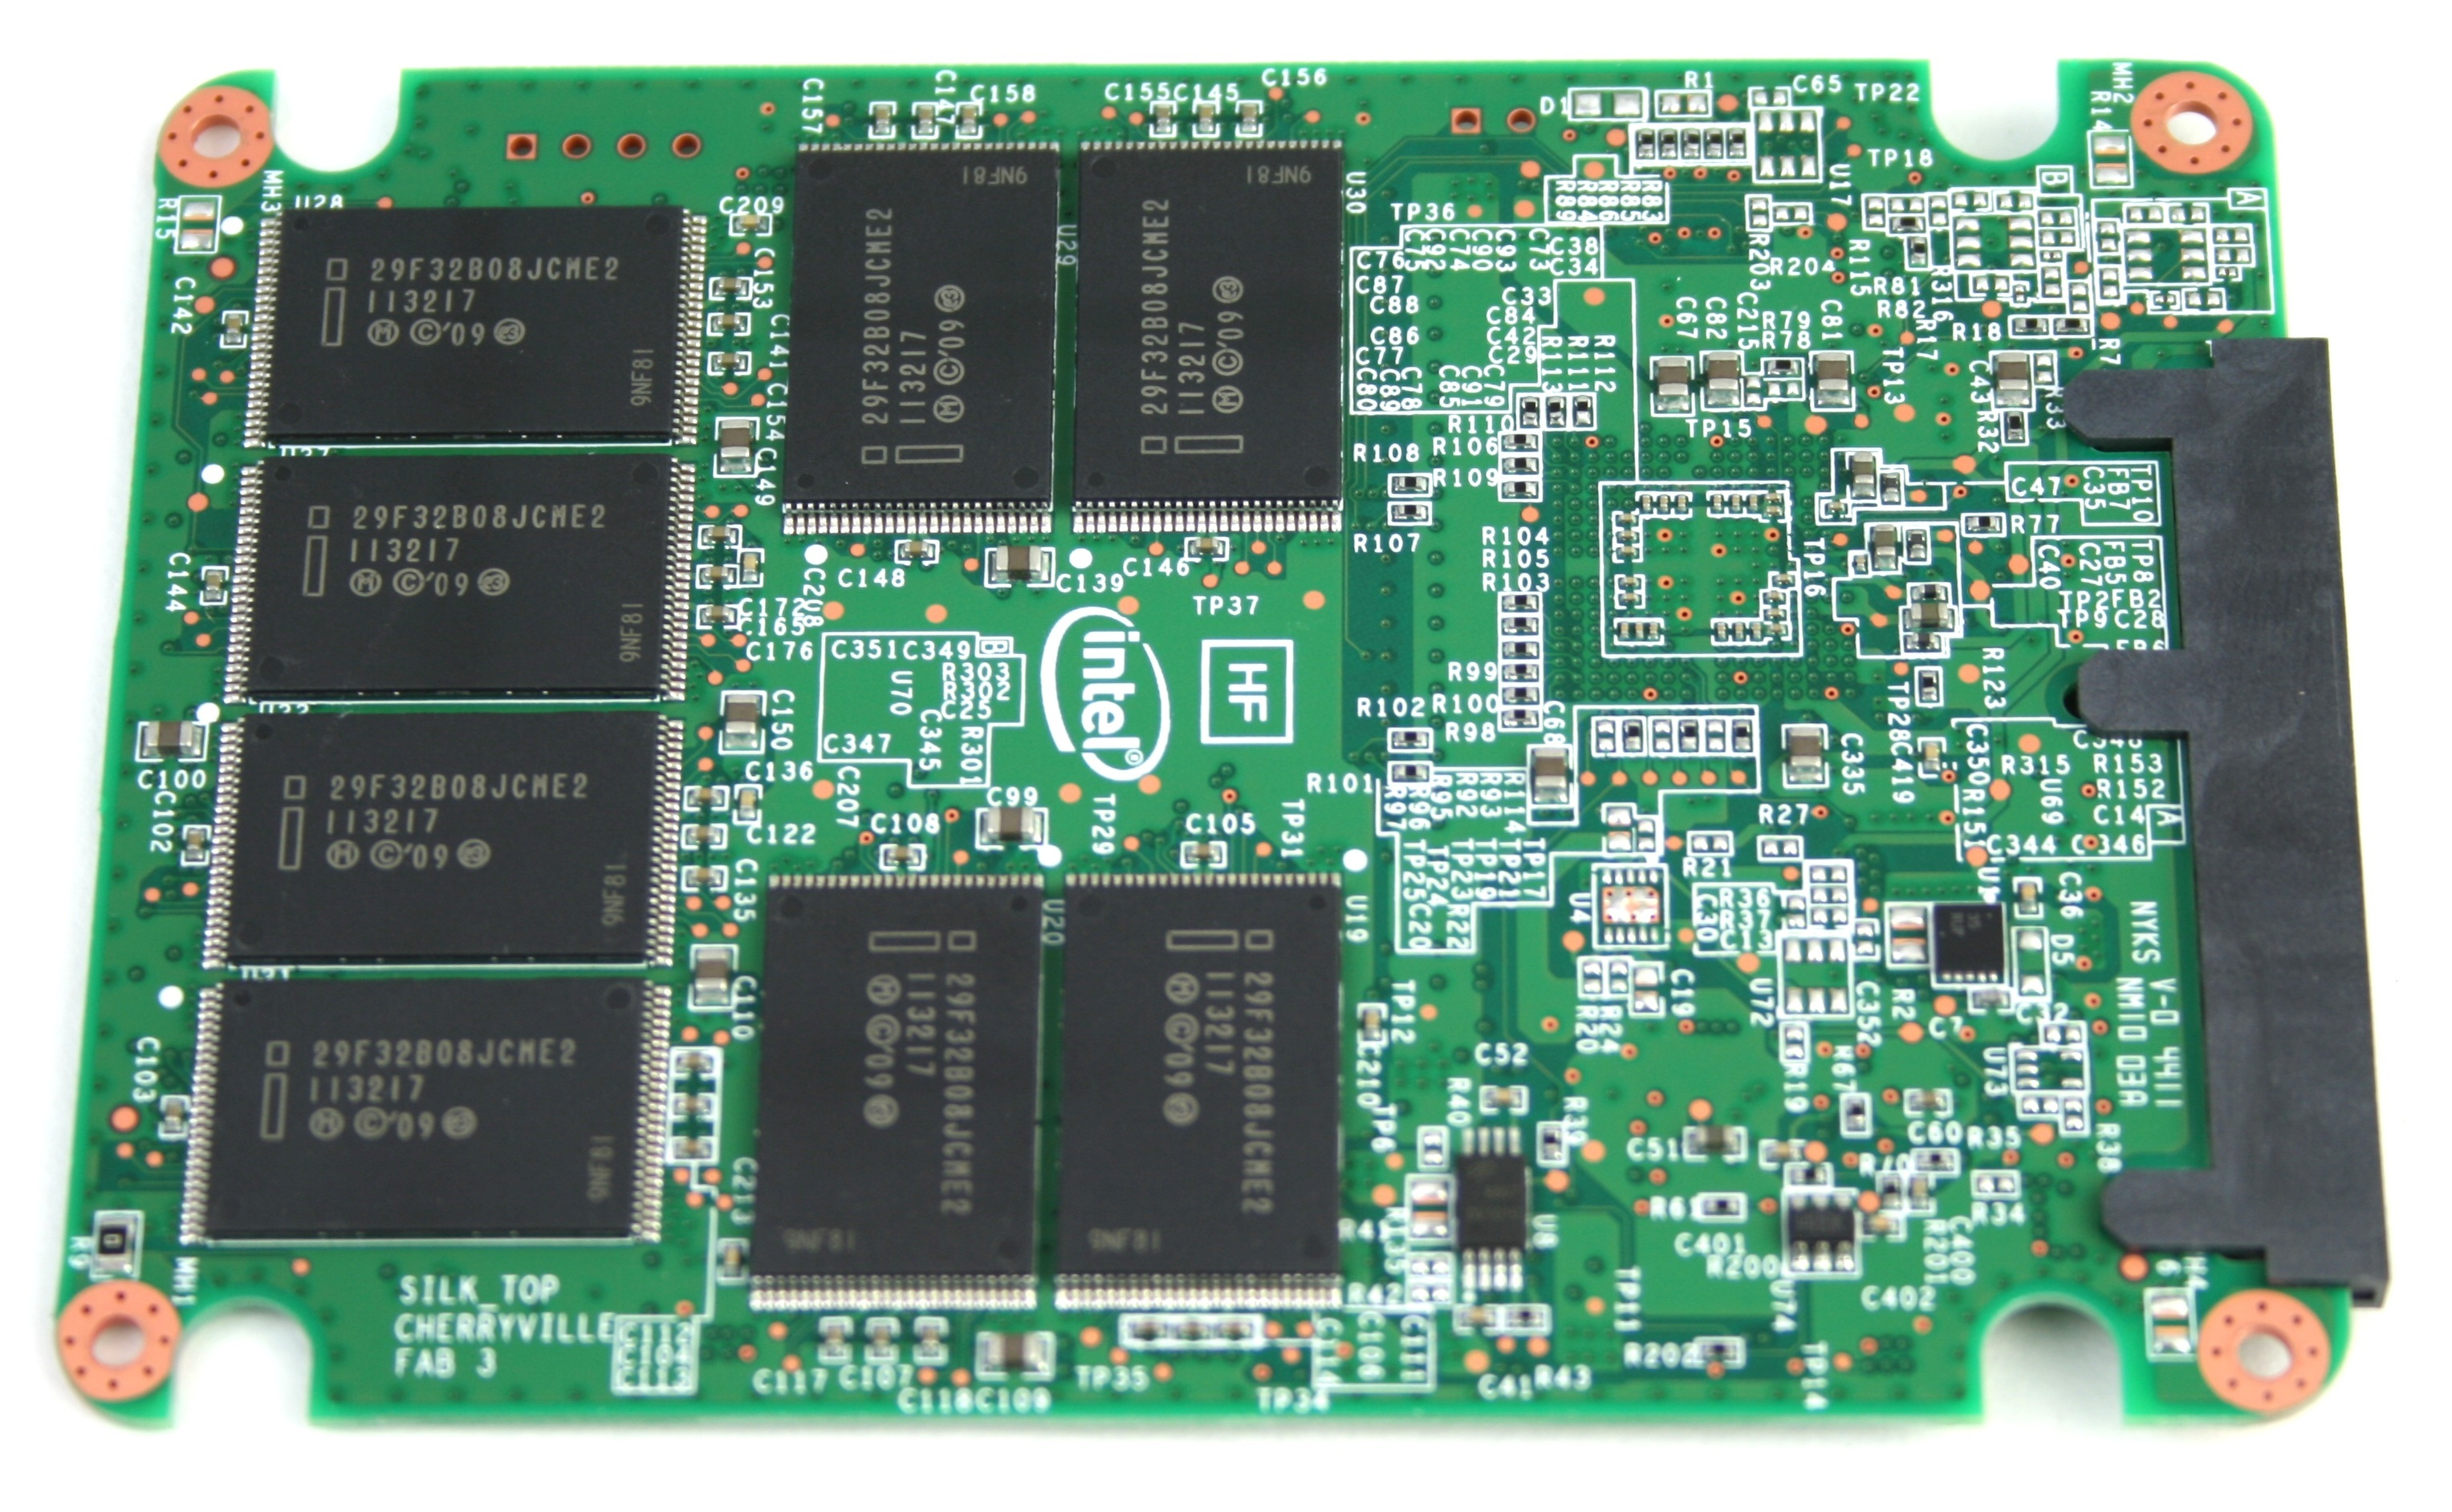 Intel 520 SSD Cherryville PCB Bottom